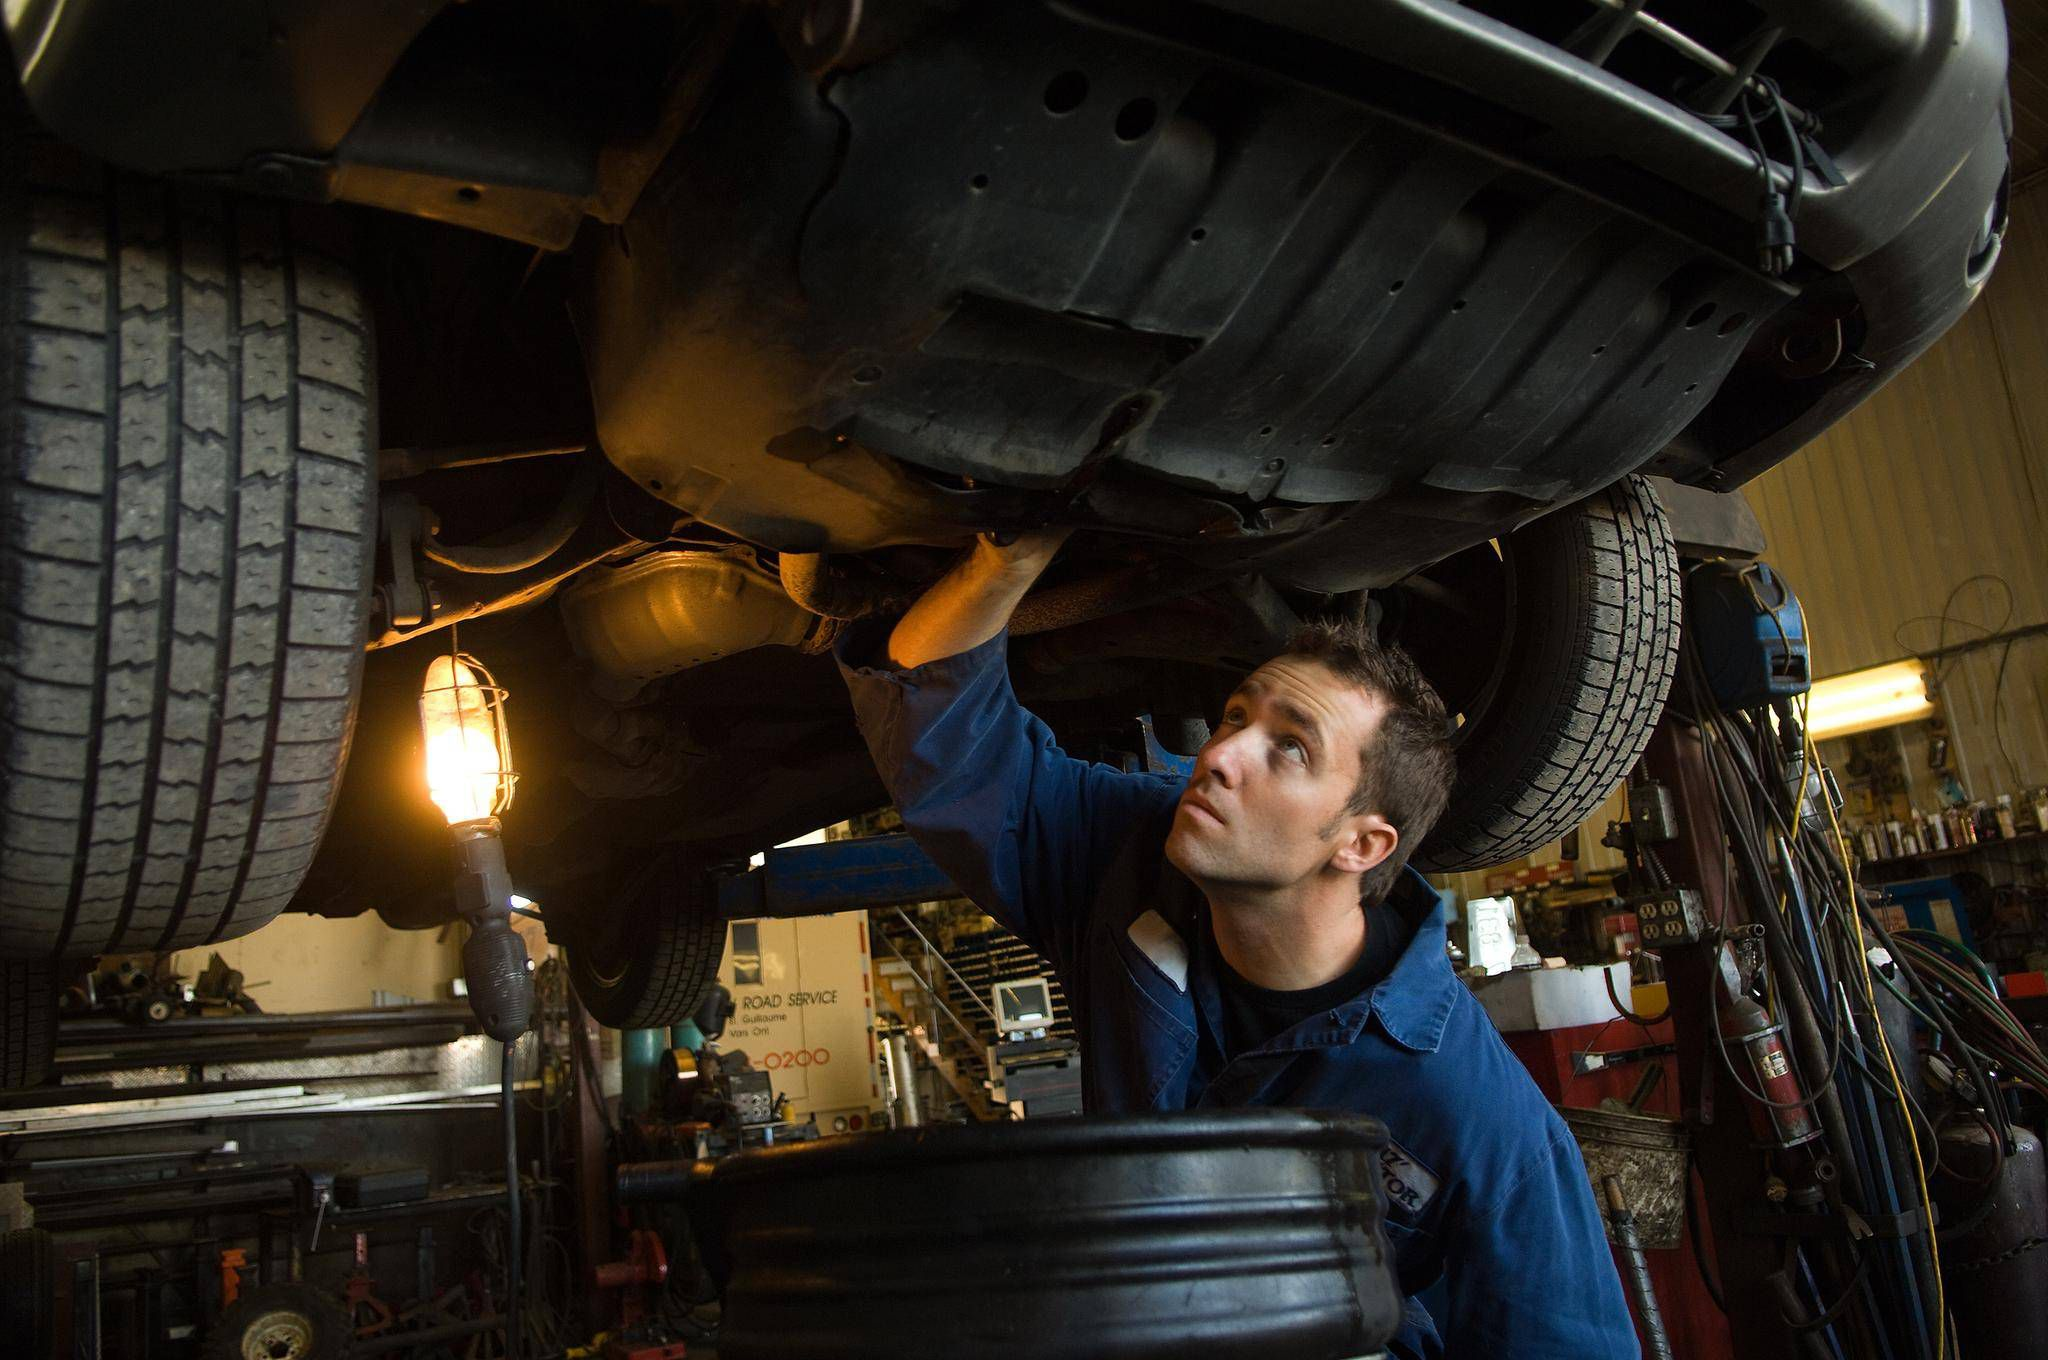 I Want To Repair Cars What Will My Salary Be The Globe